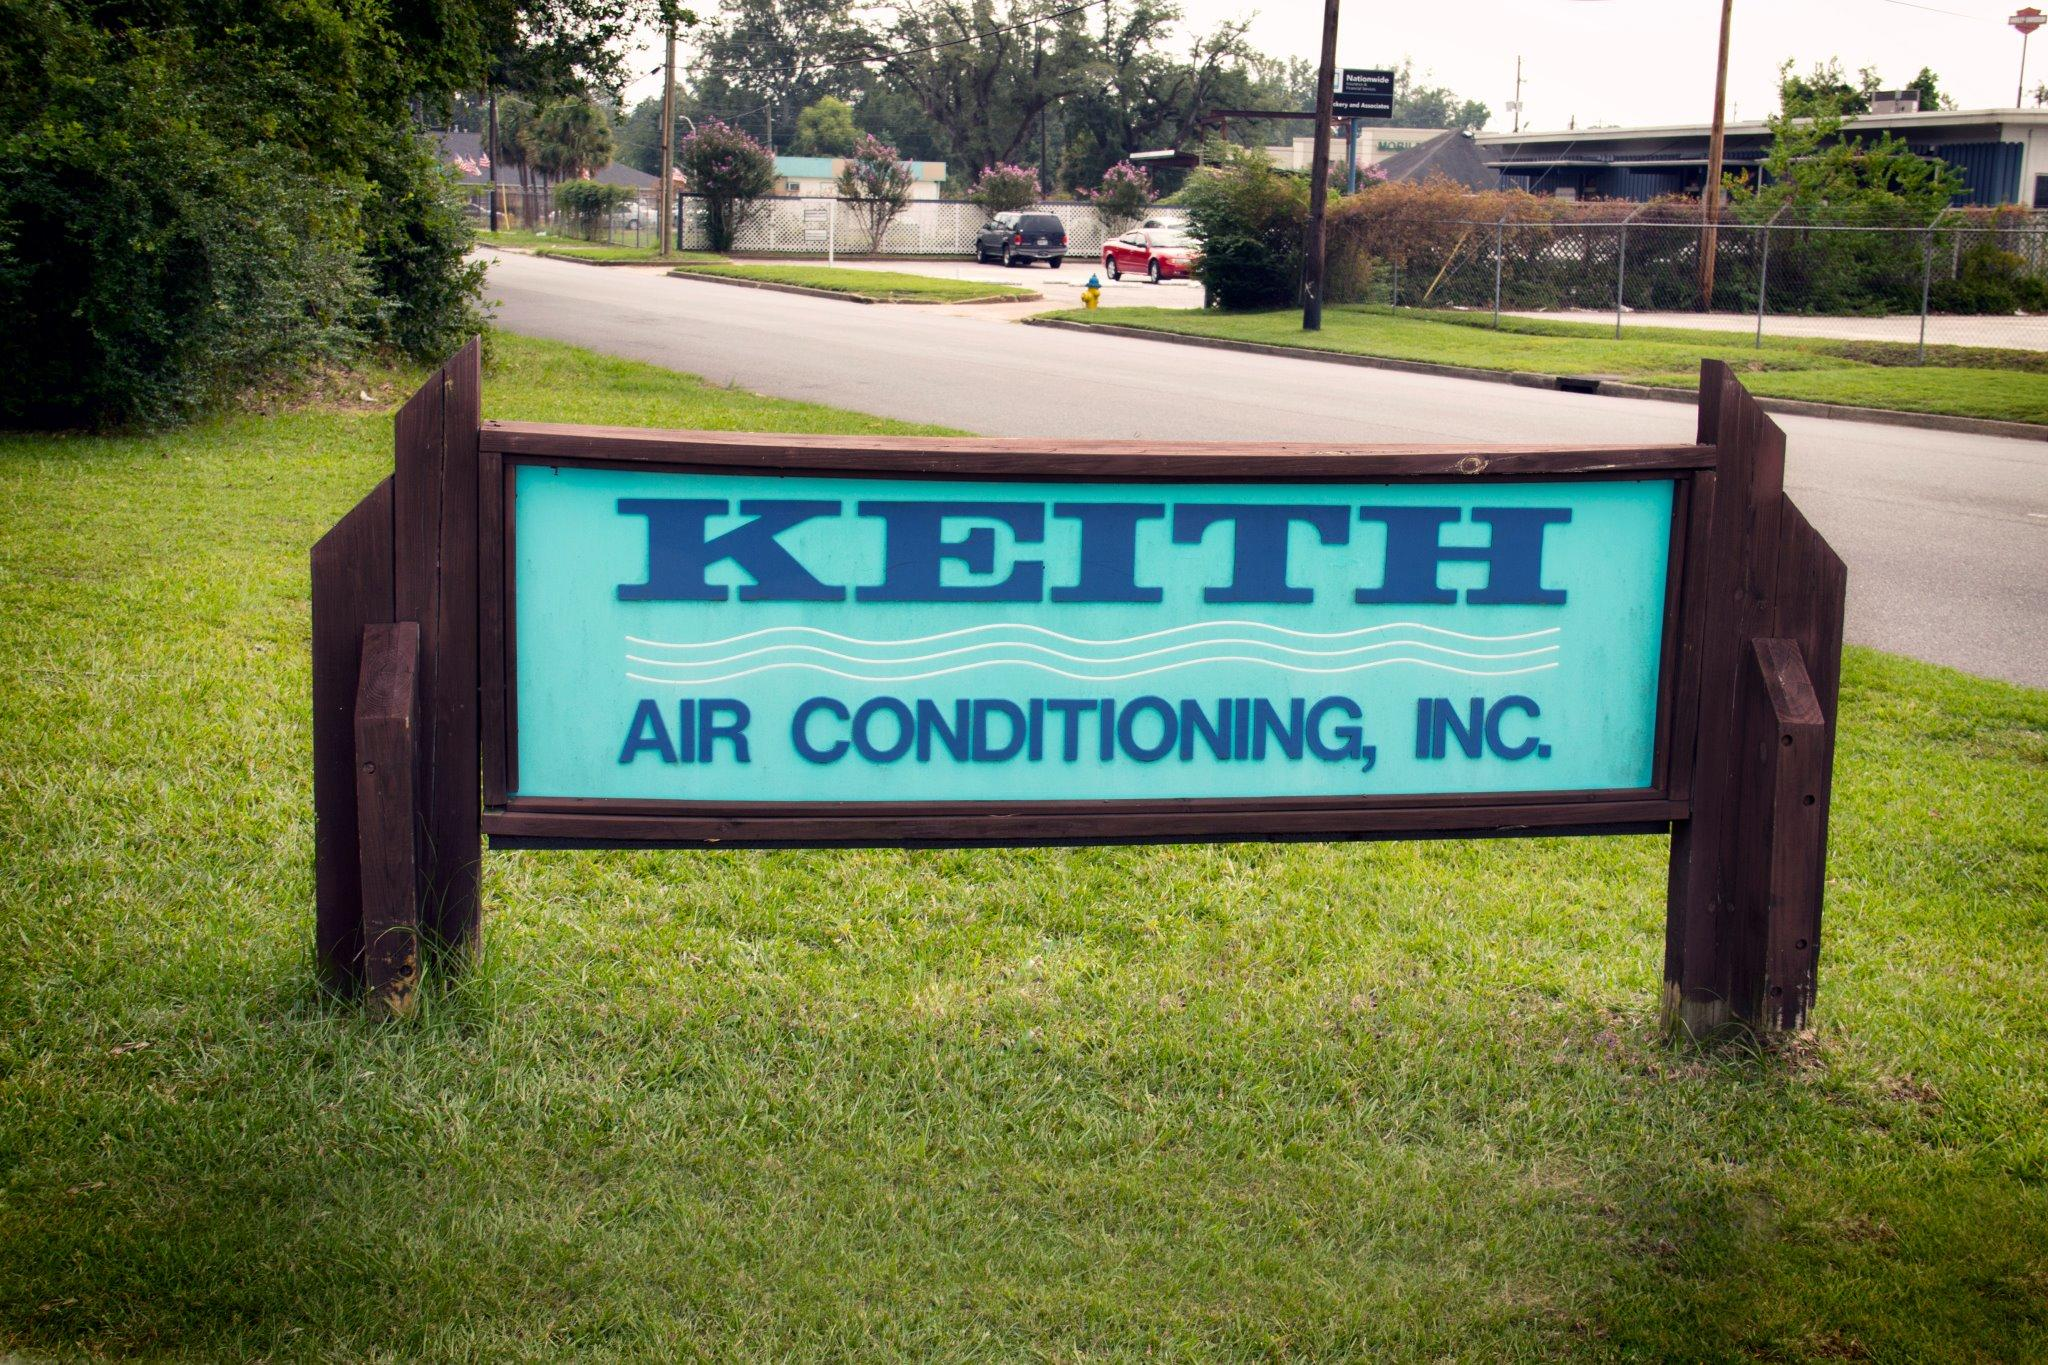 Keith Air Conditioning, Inc. image 6